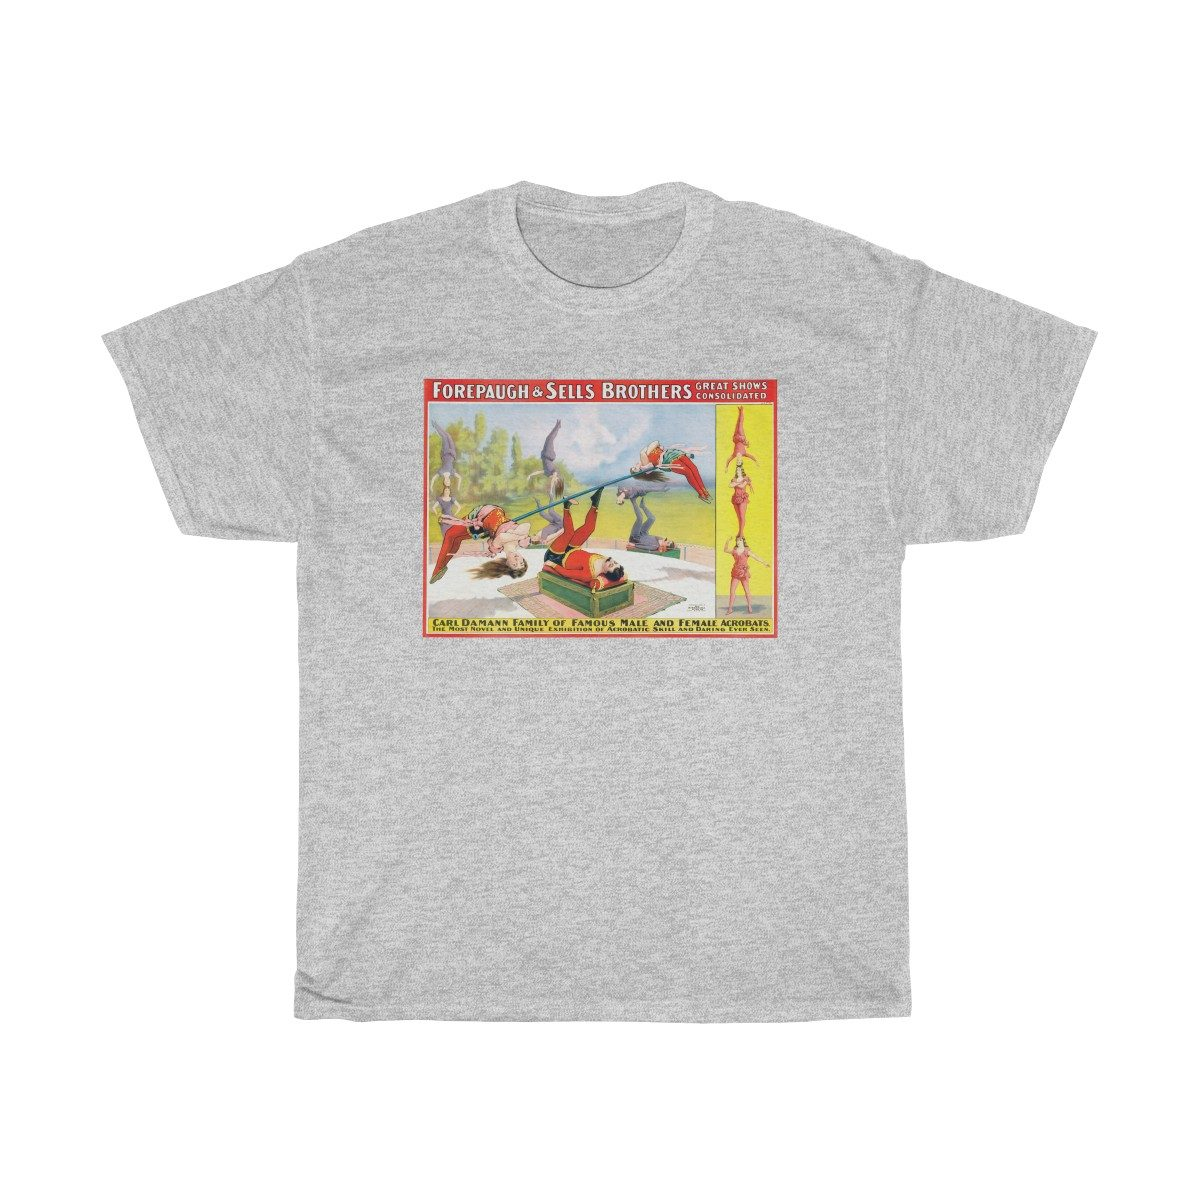 carl-damann-acrobats-vintage-circus-tshirt-gift-light-grey